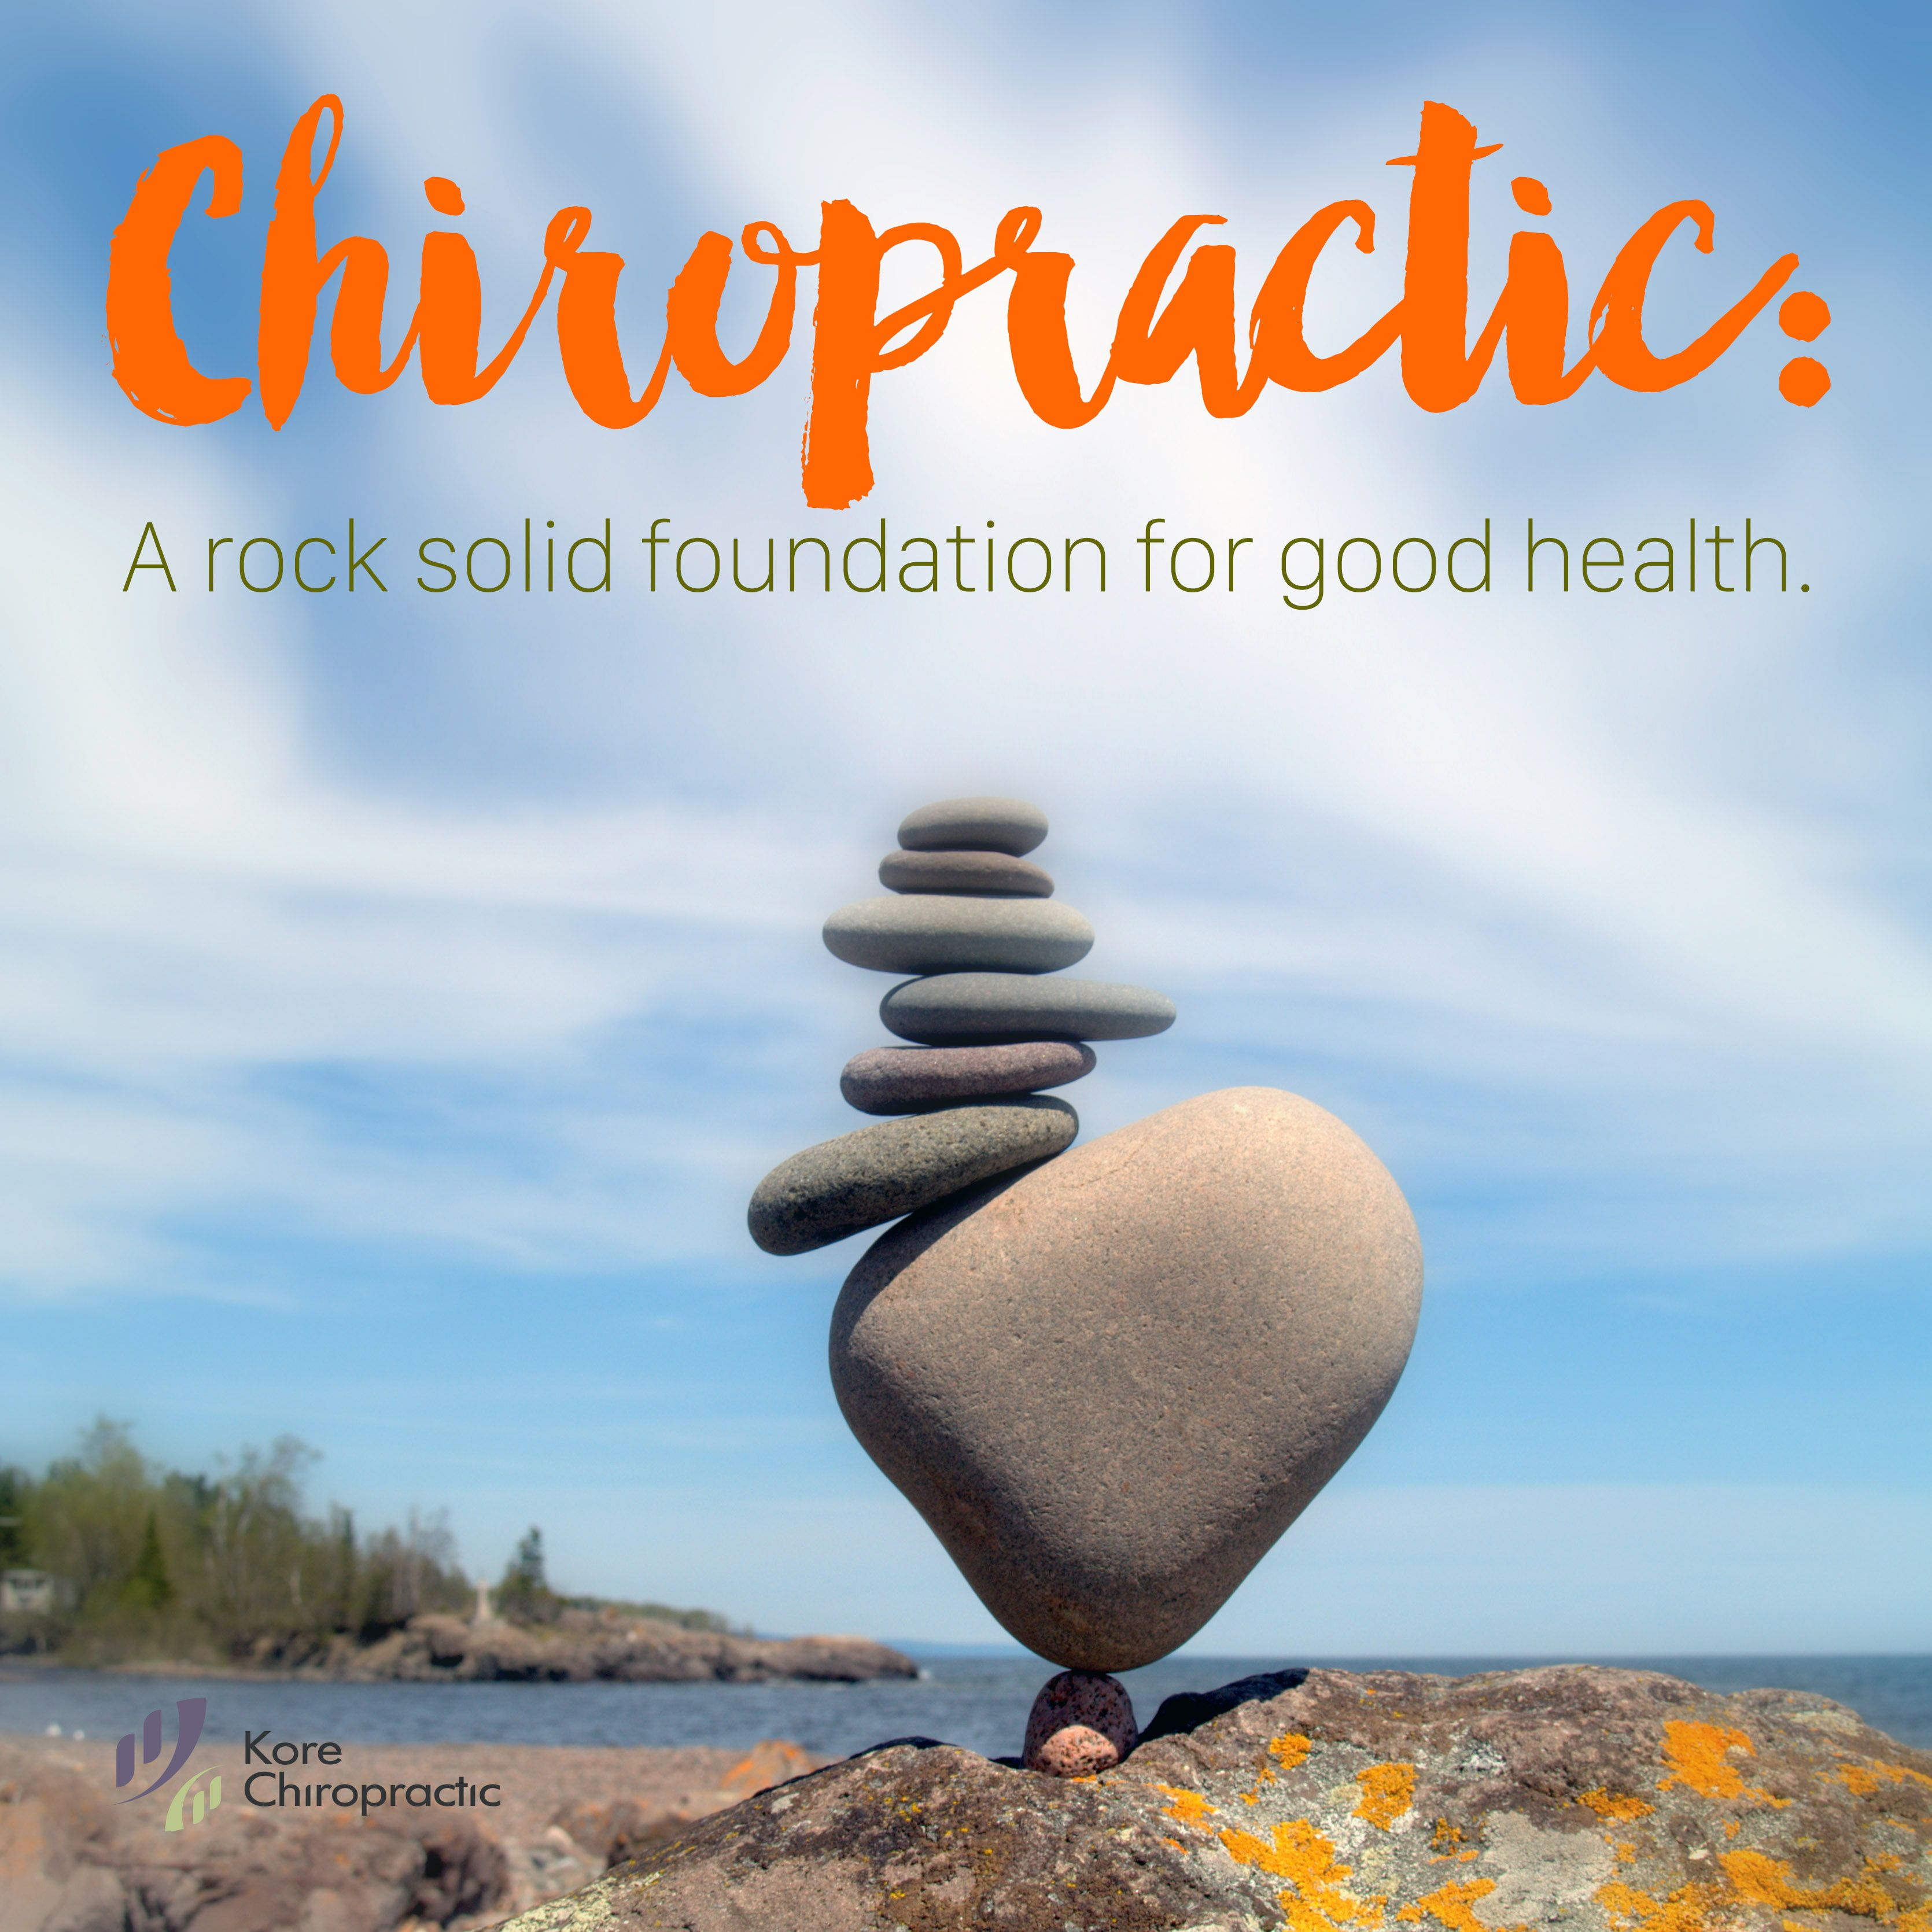 Chiropractic A rock solid foundation of good health.